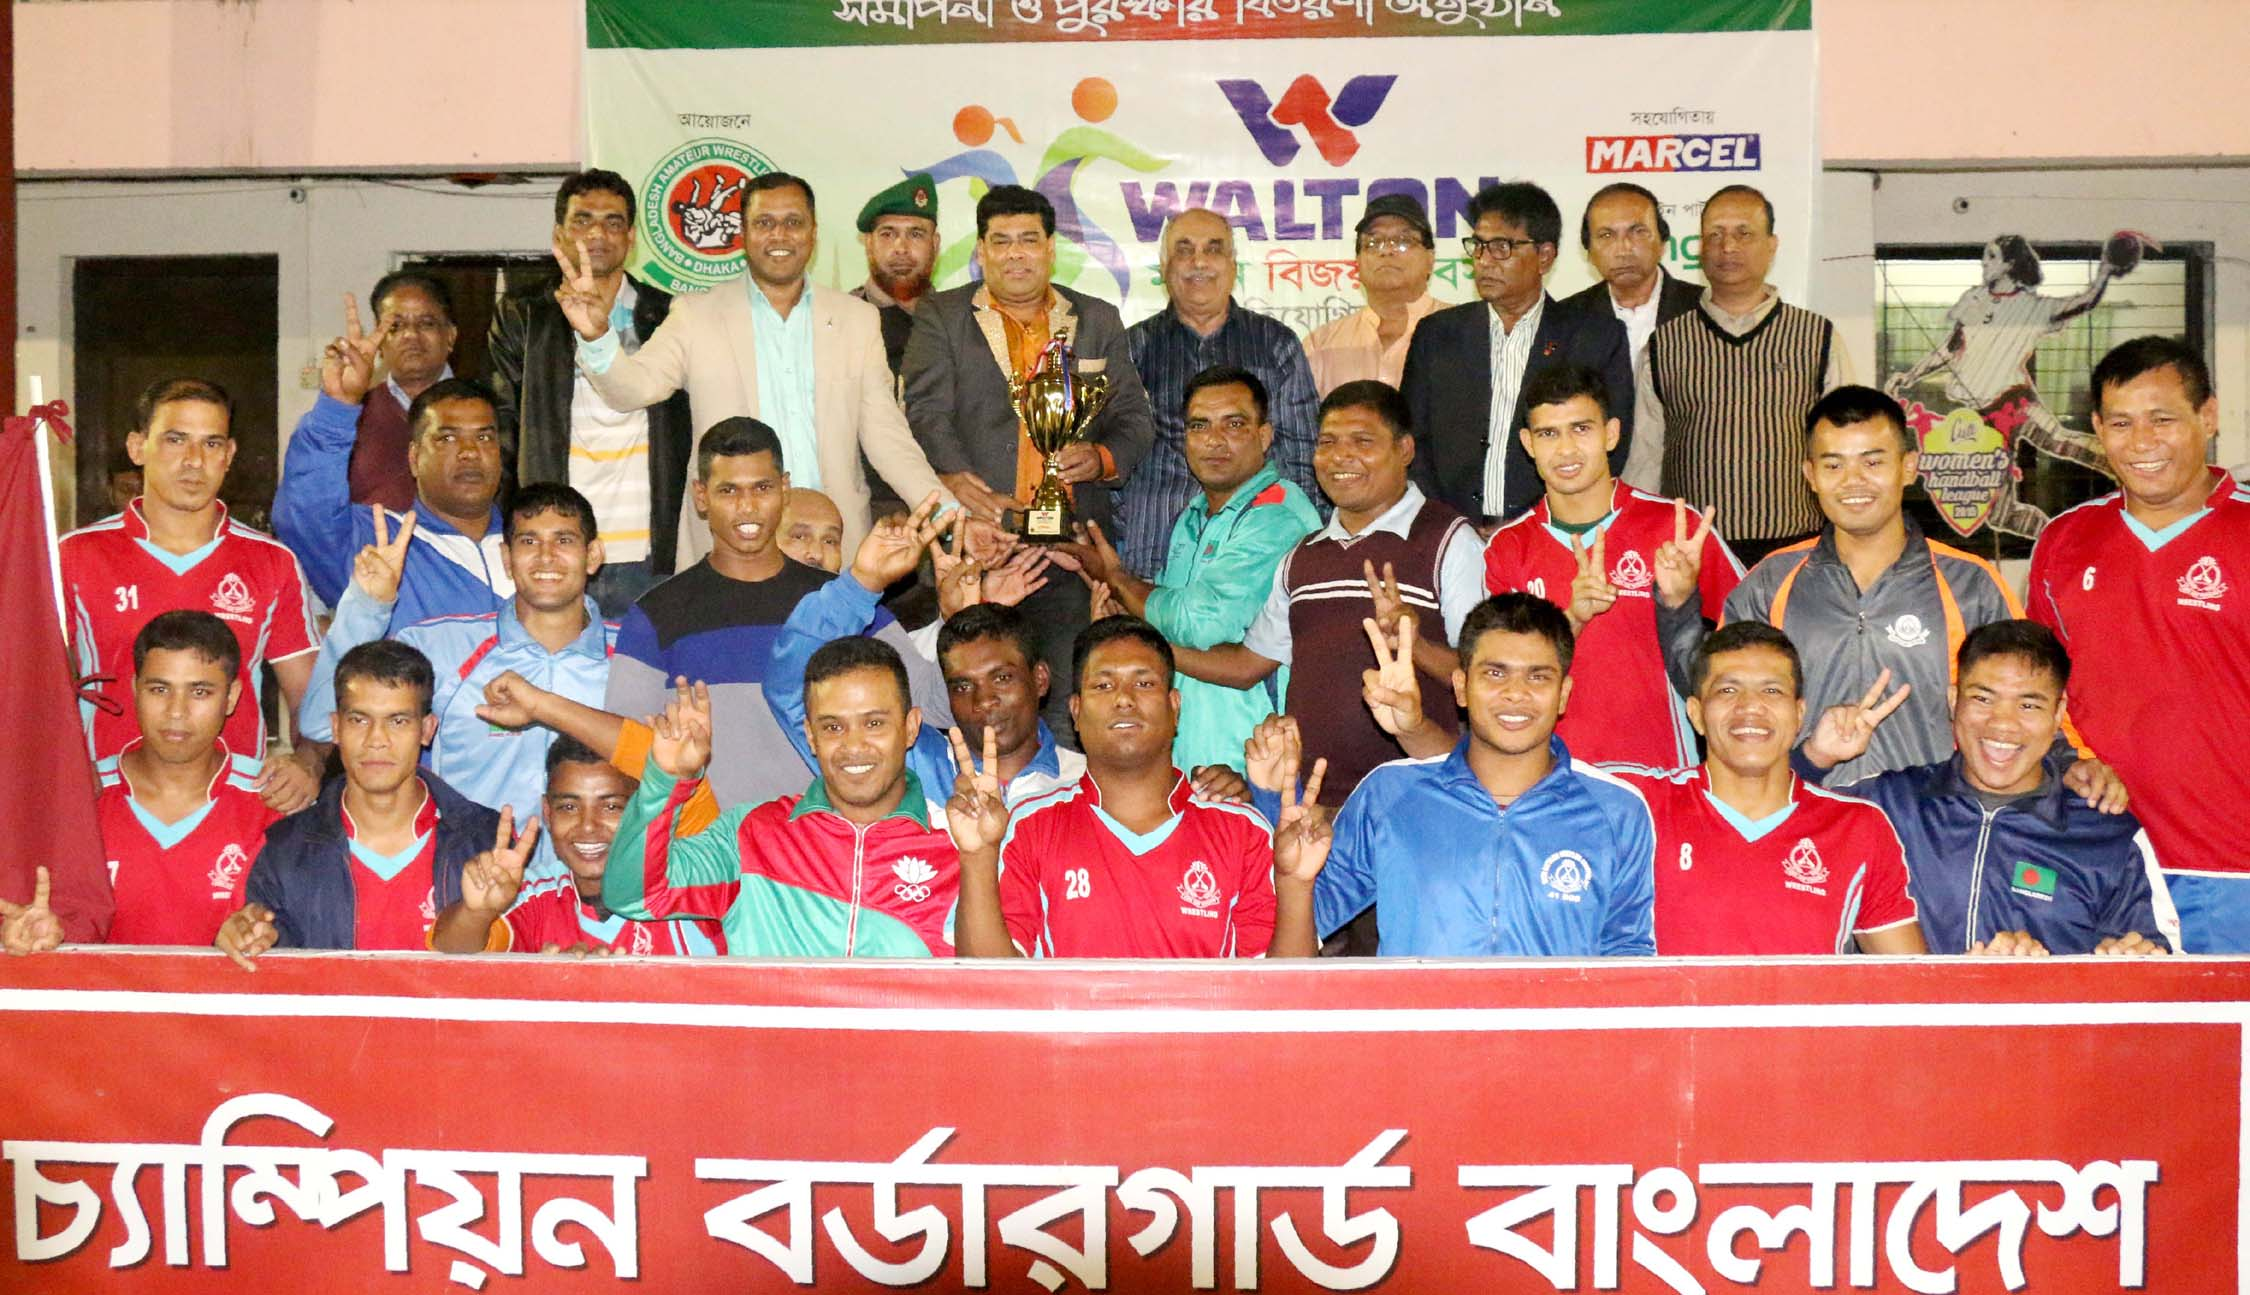 Members of Border Guard Bangladesh, the champions of the Men's Group of the Walton Victory Day Wrestling Competition with the guests and officials of Bangladesh Amateur Wrestling Federation pose for a photo session at the Shaheed (Captain) M Mansur Ali National Handball Stadium on Monday.